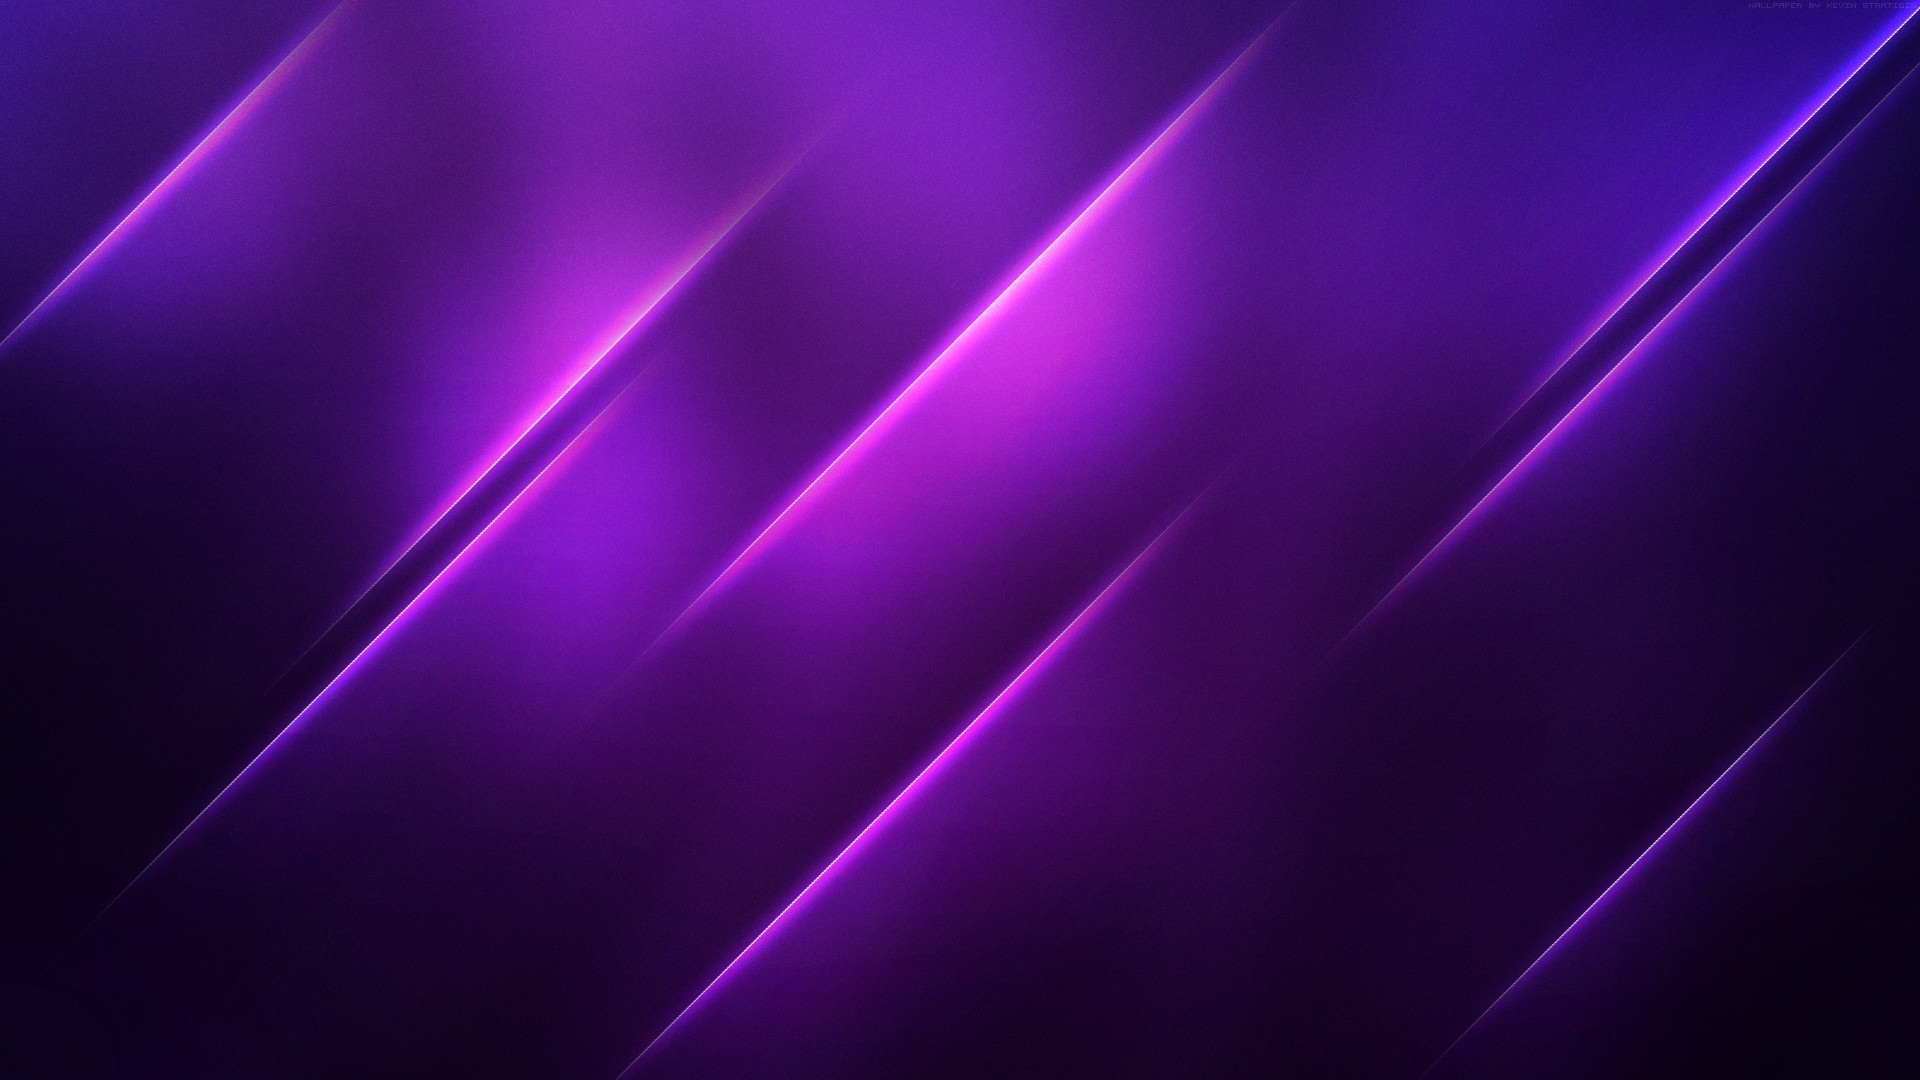 Neat Purple Backgrounds